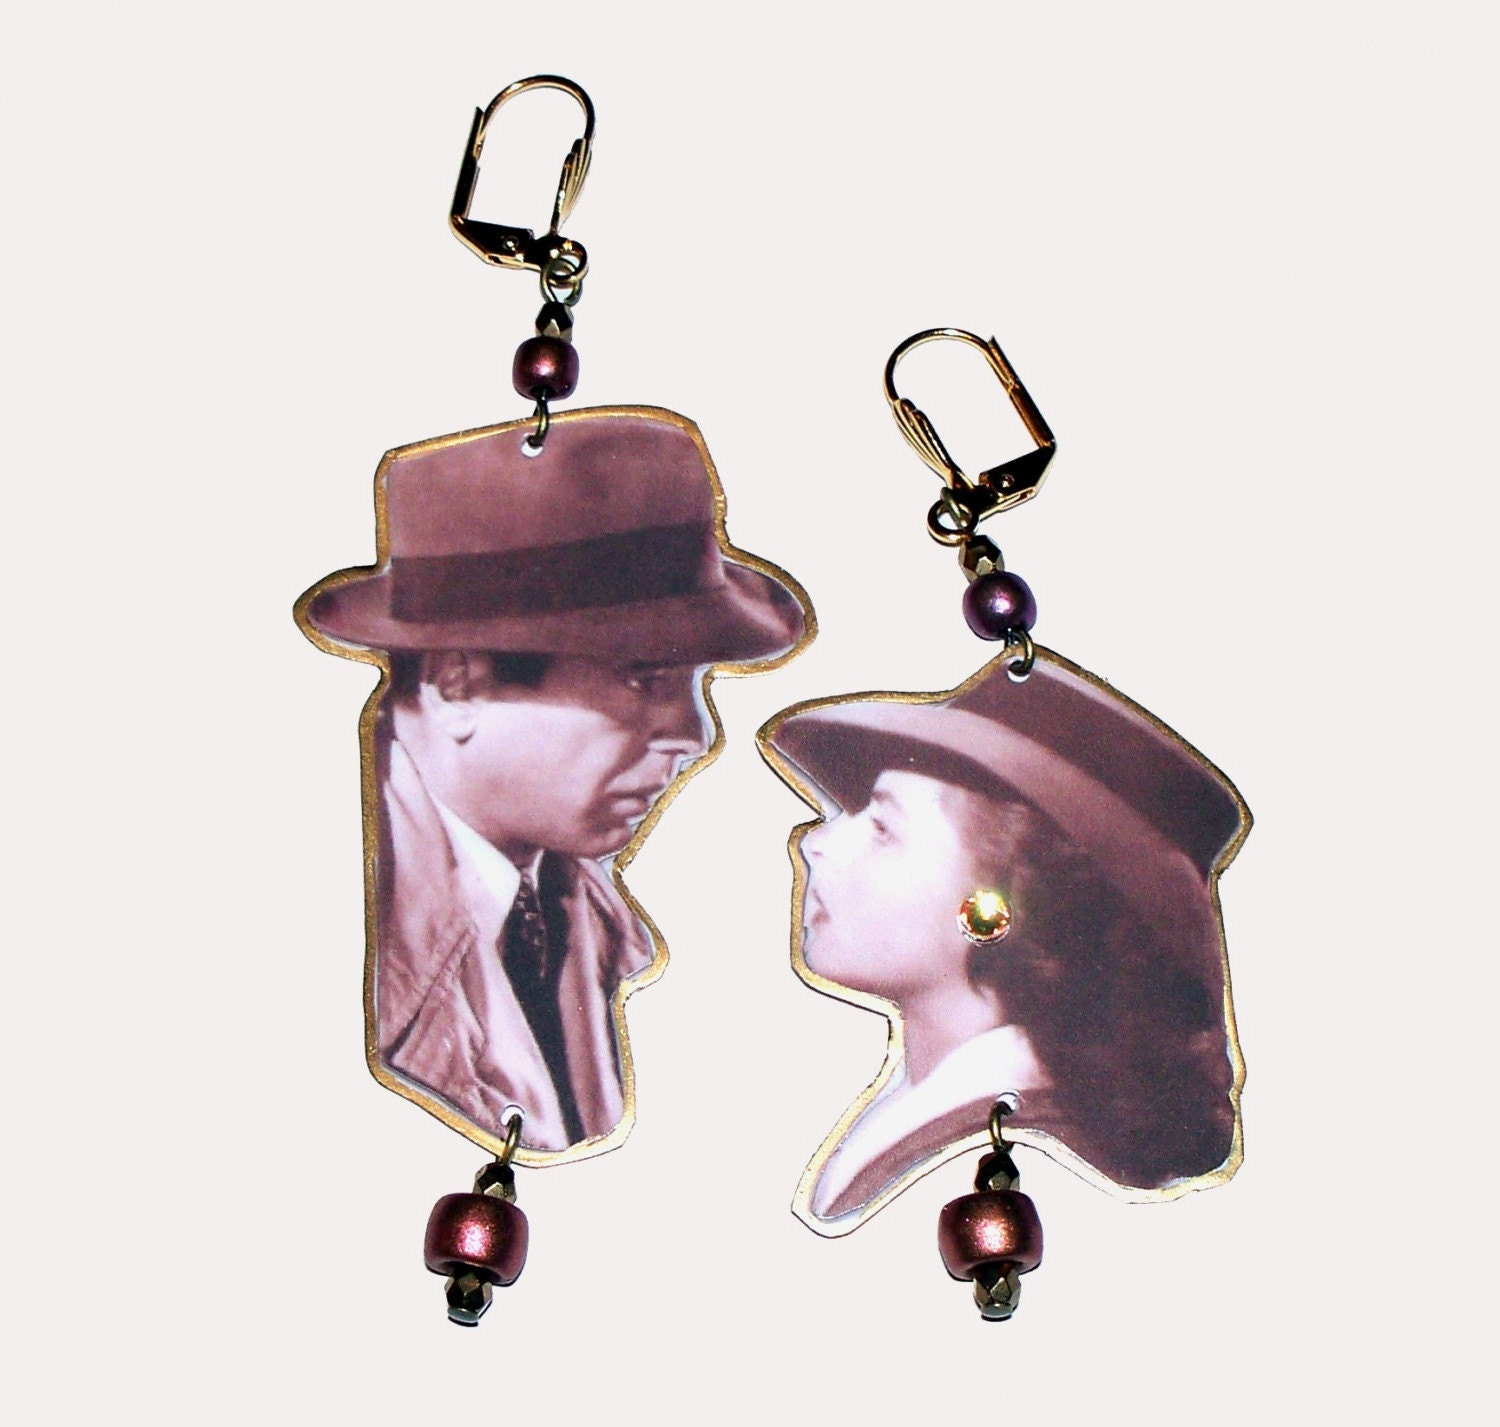 Casablanca Earrings with Ingrid Bergman and Humphrey Bogart